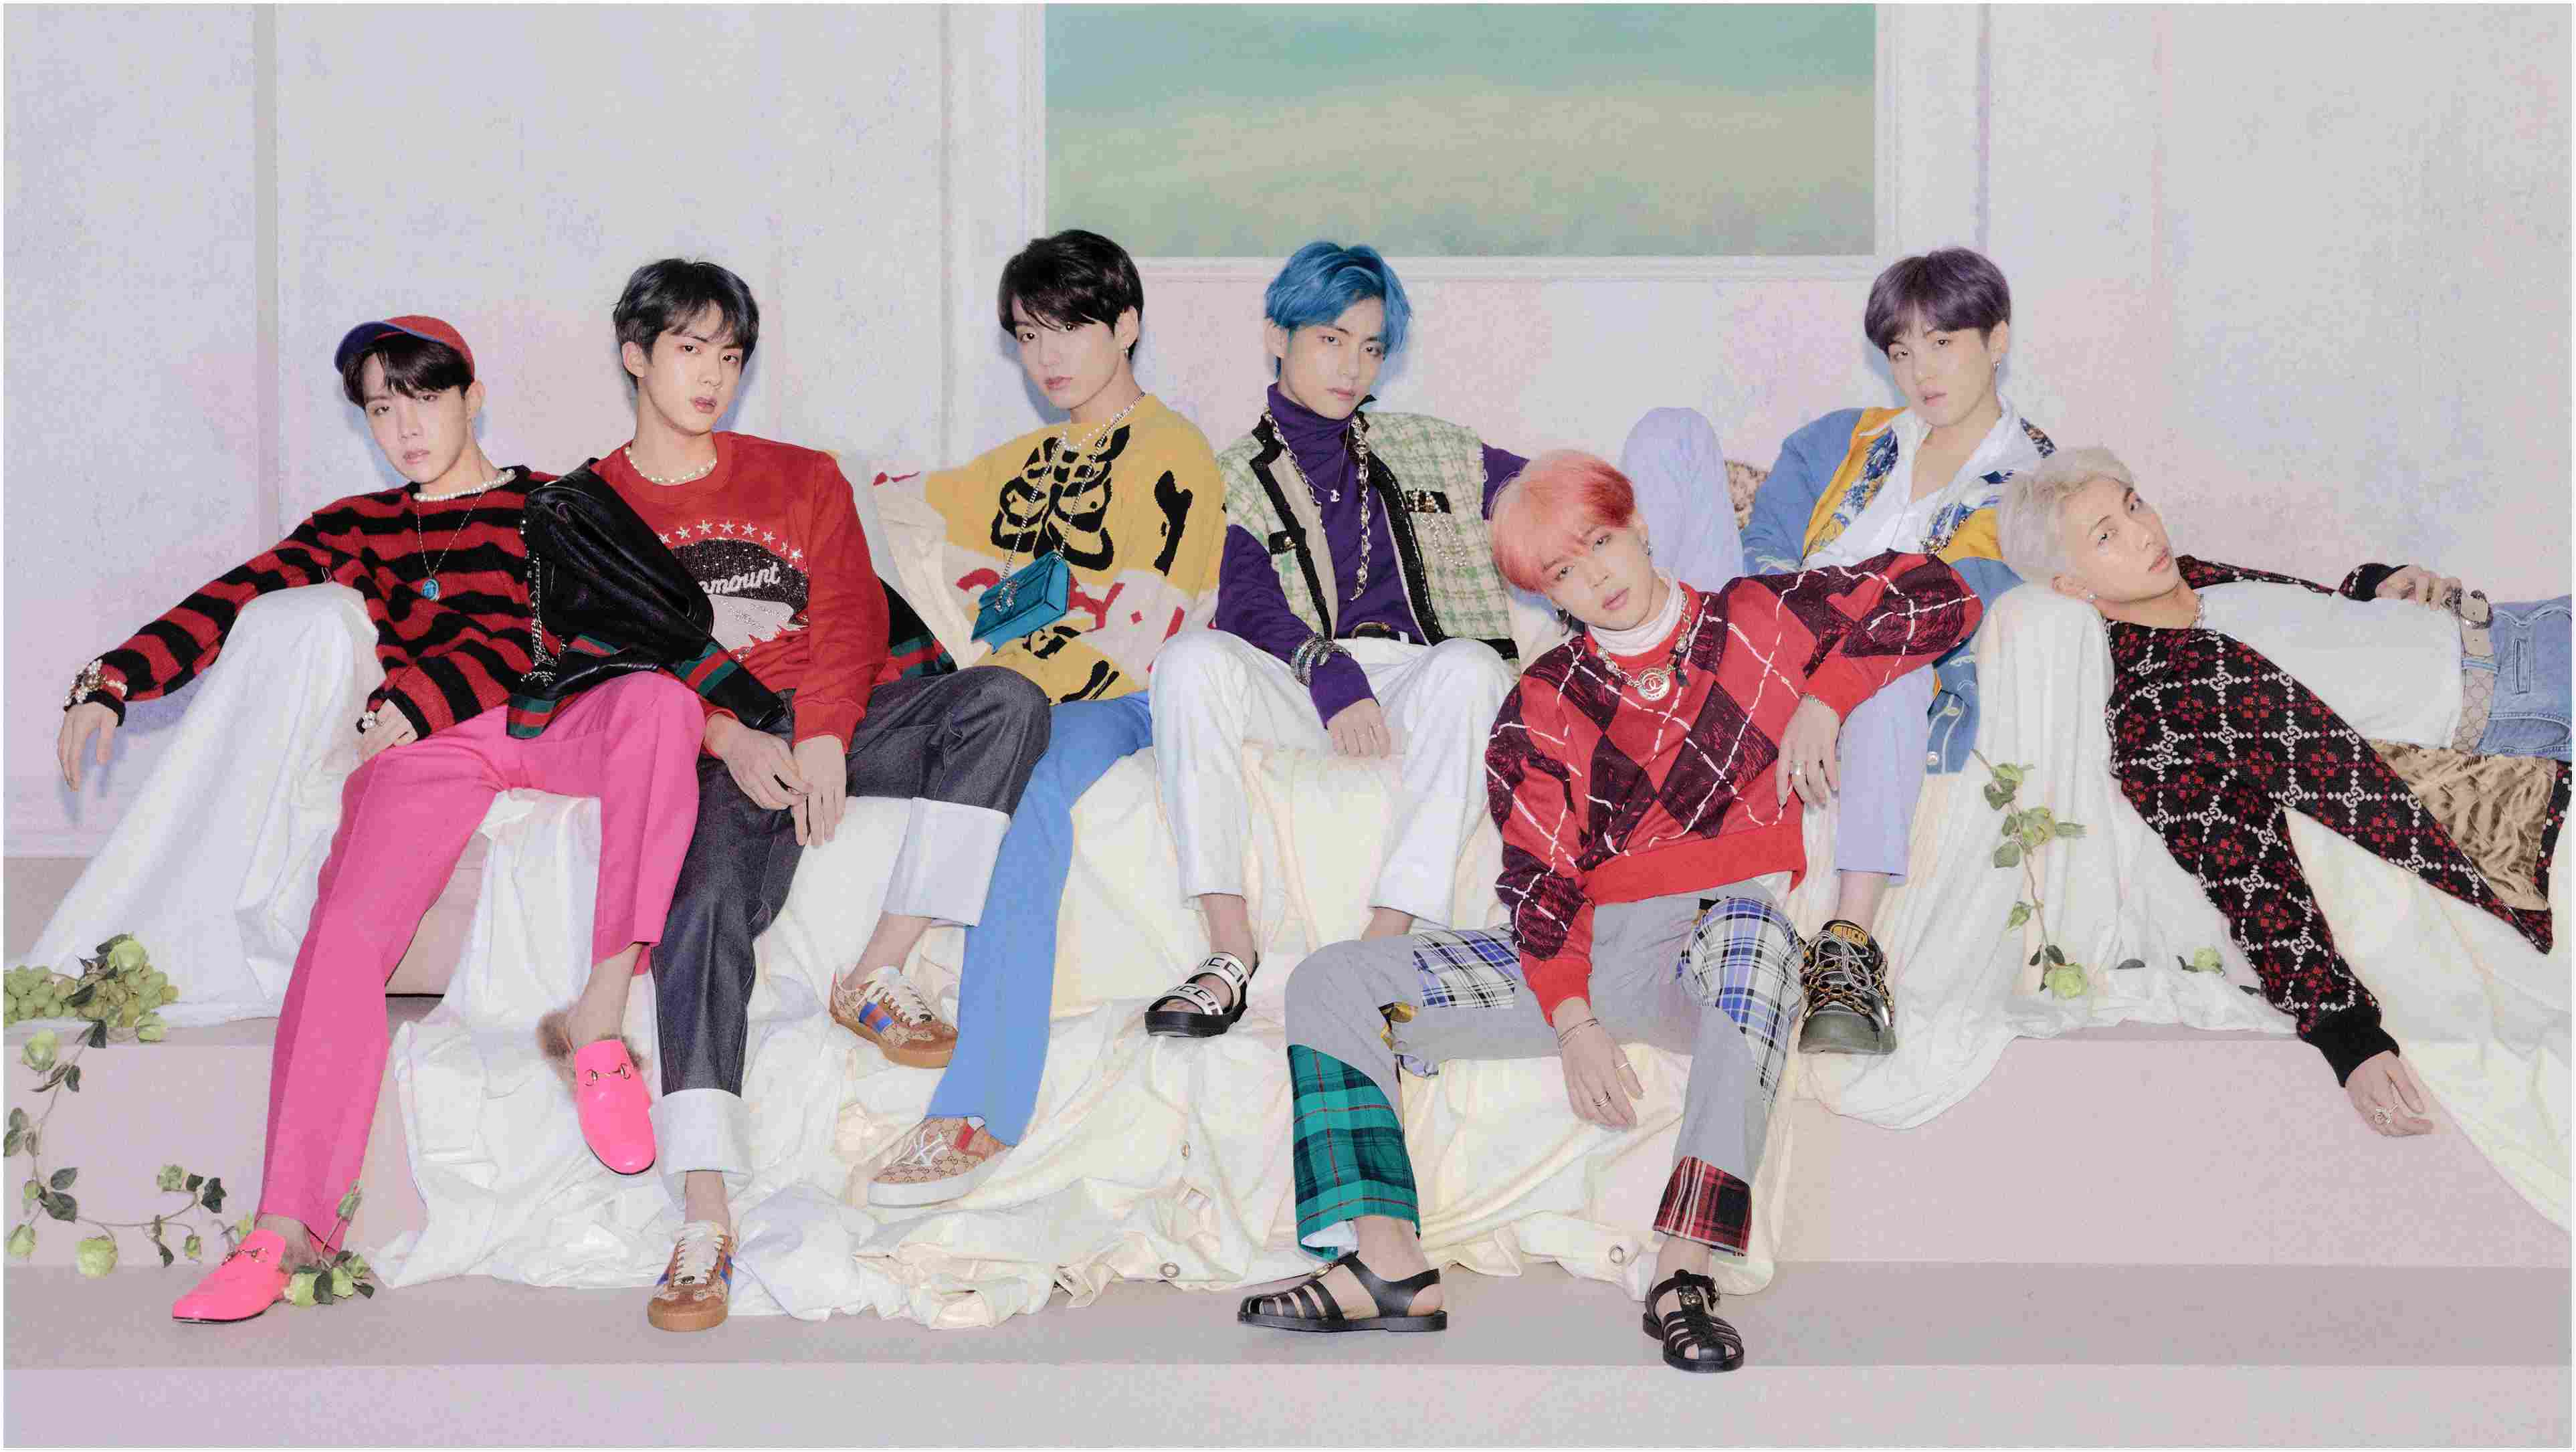 Bts Desktop Hd 2020 Wallpapers Wallpaper Cave